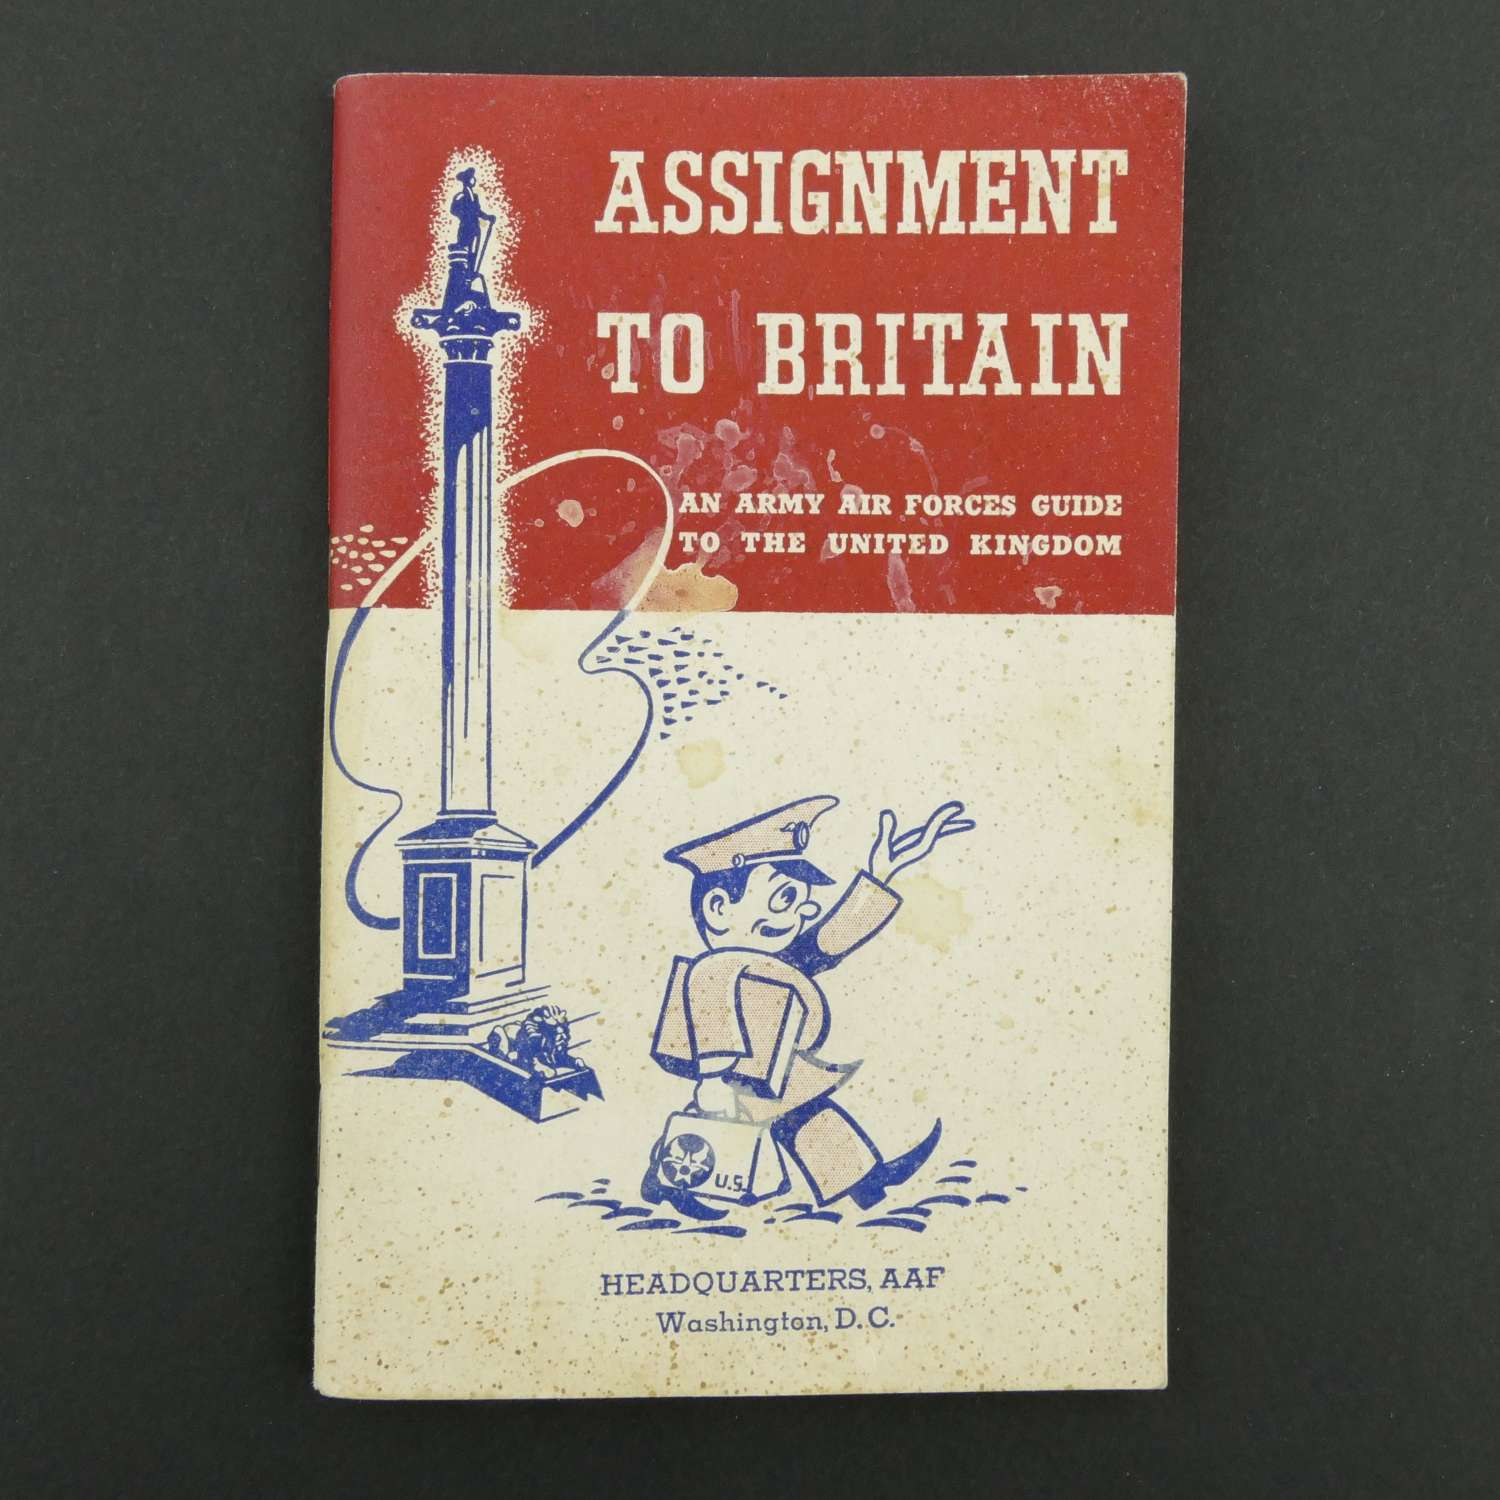 Assignment to Britain - An AAF Guide to the UK